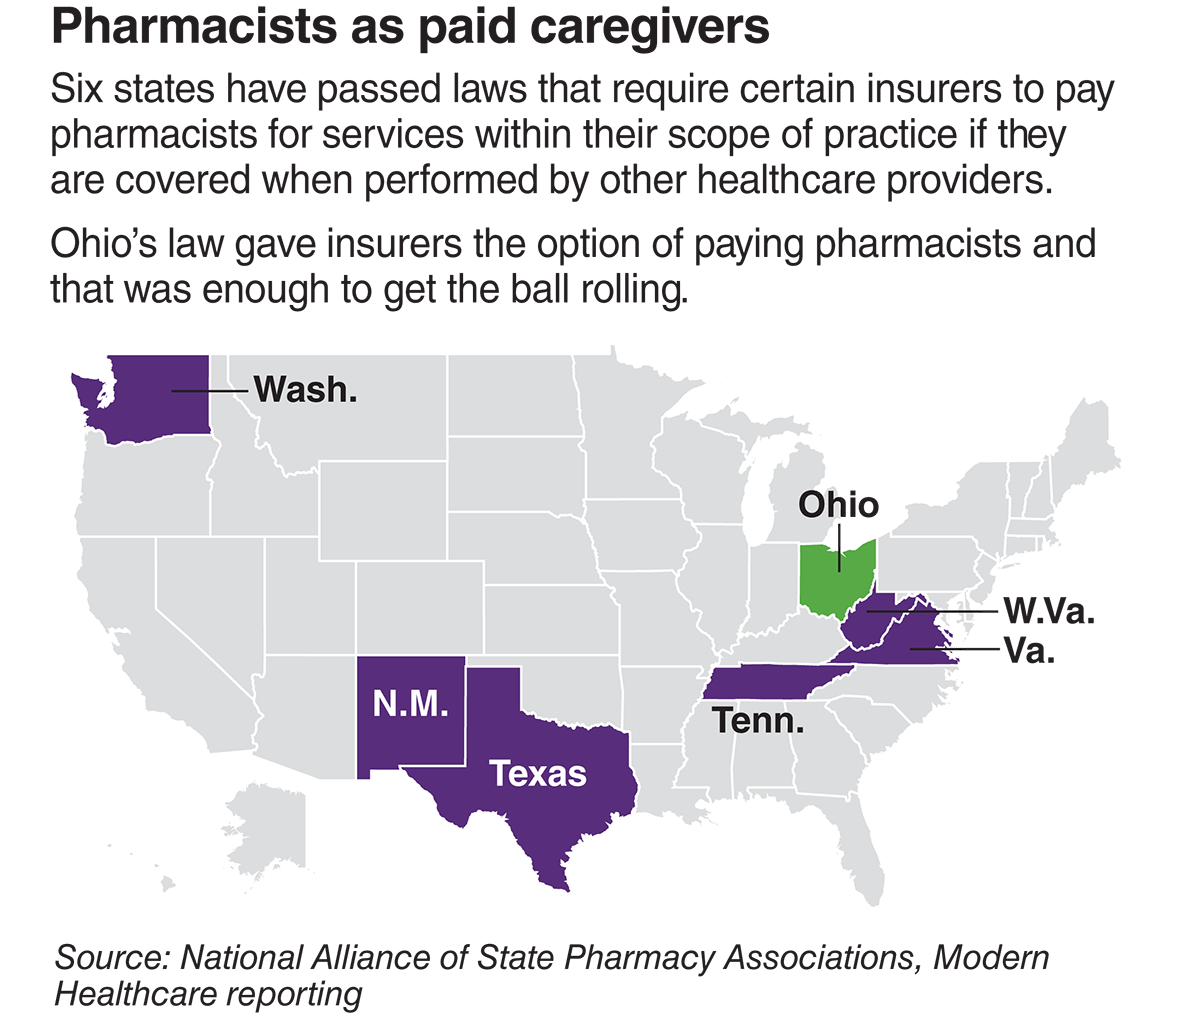 States where pharmacists are paid as caregivers